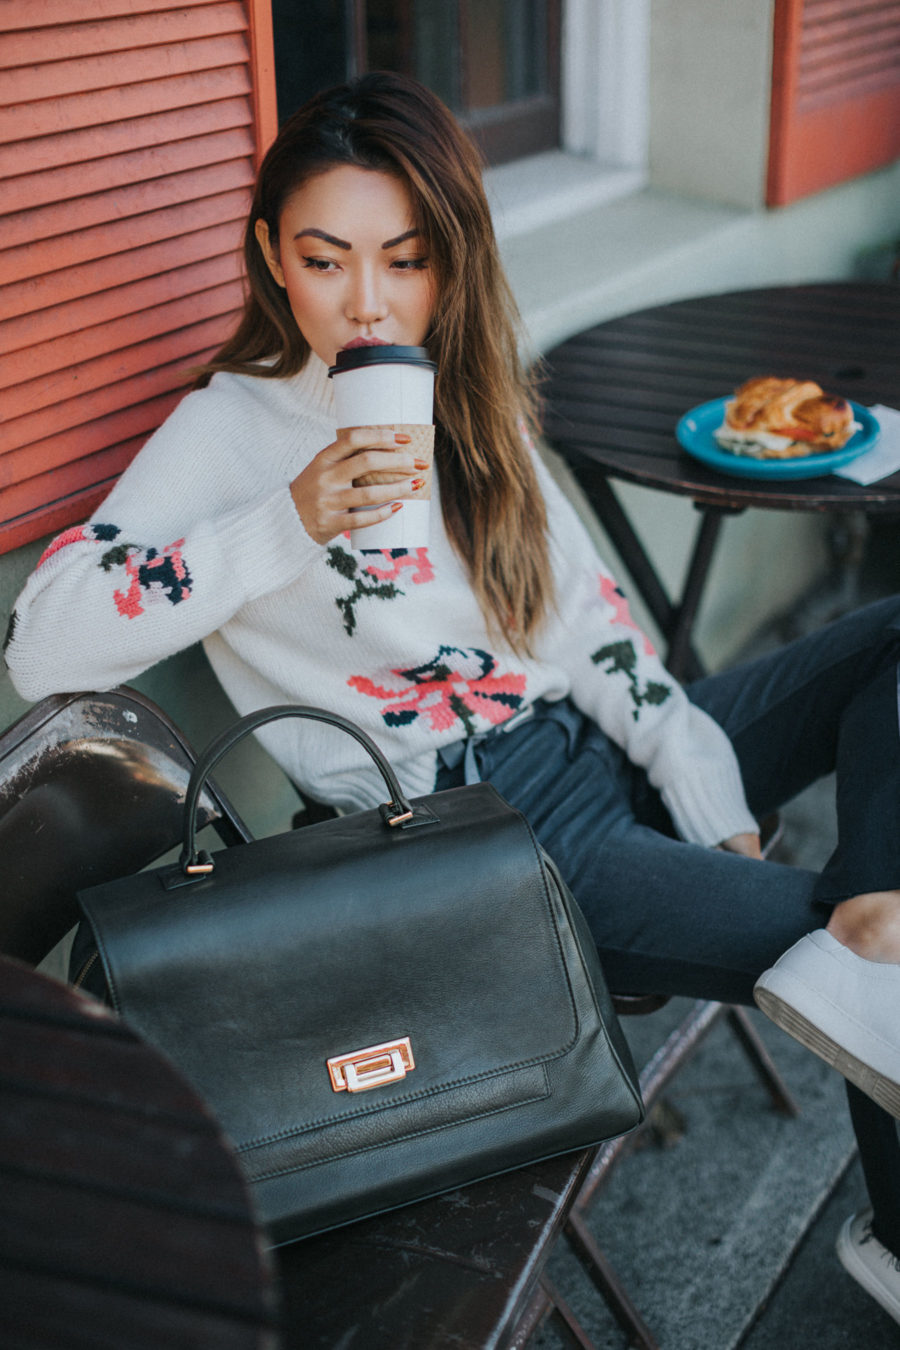 Travel Caryall Weekend Getaway Style // NotJessFashion.com